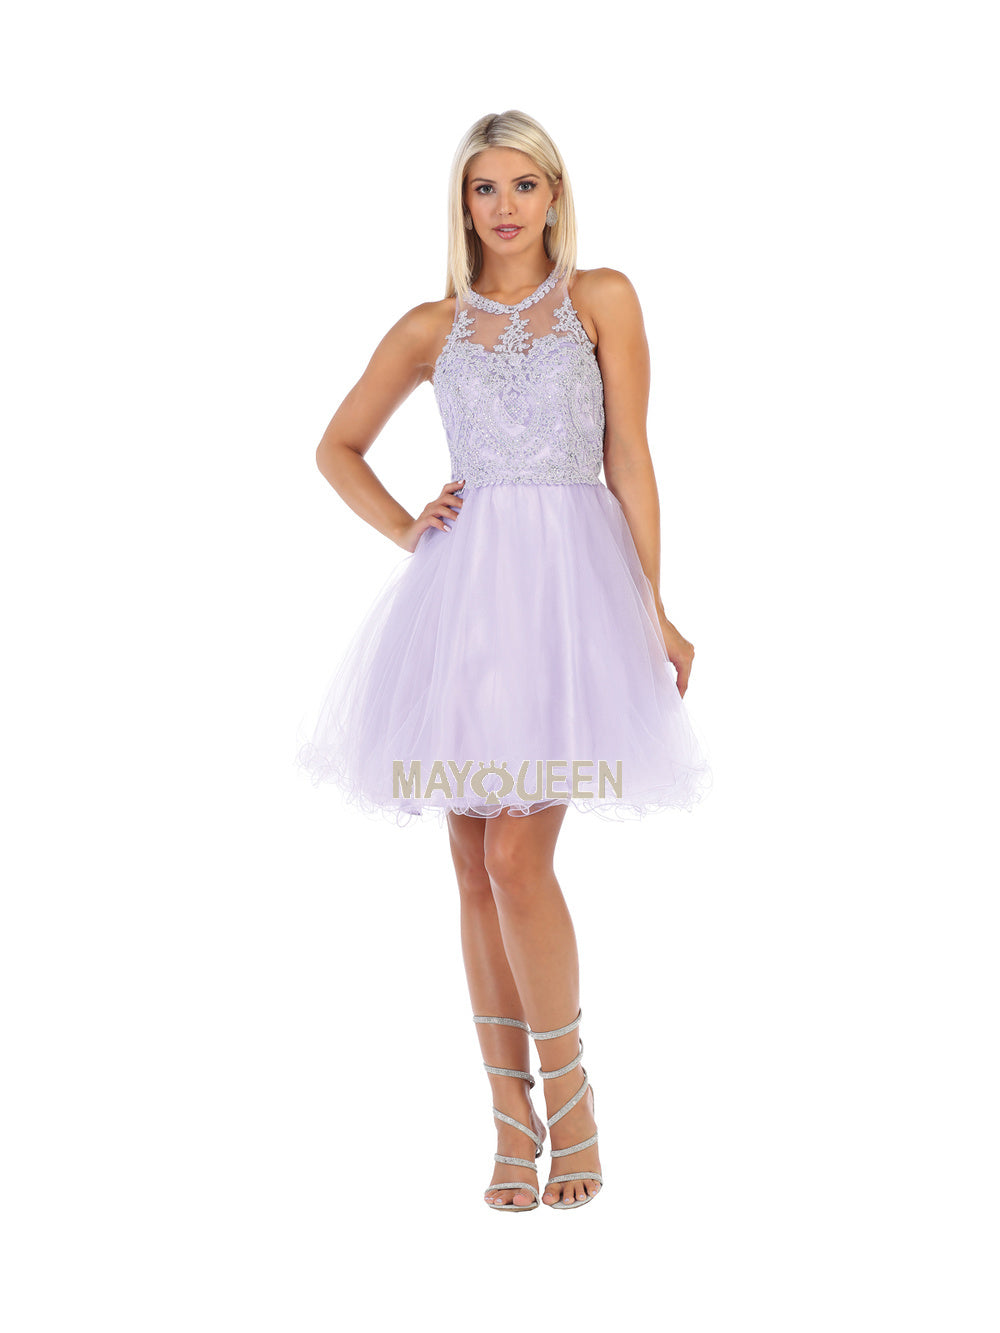 Mayqueen Size Chart E MQ 1643 - Lace-Applique High-Neck with Tulle Skirt Homecoming Dress - Diggz Prom